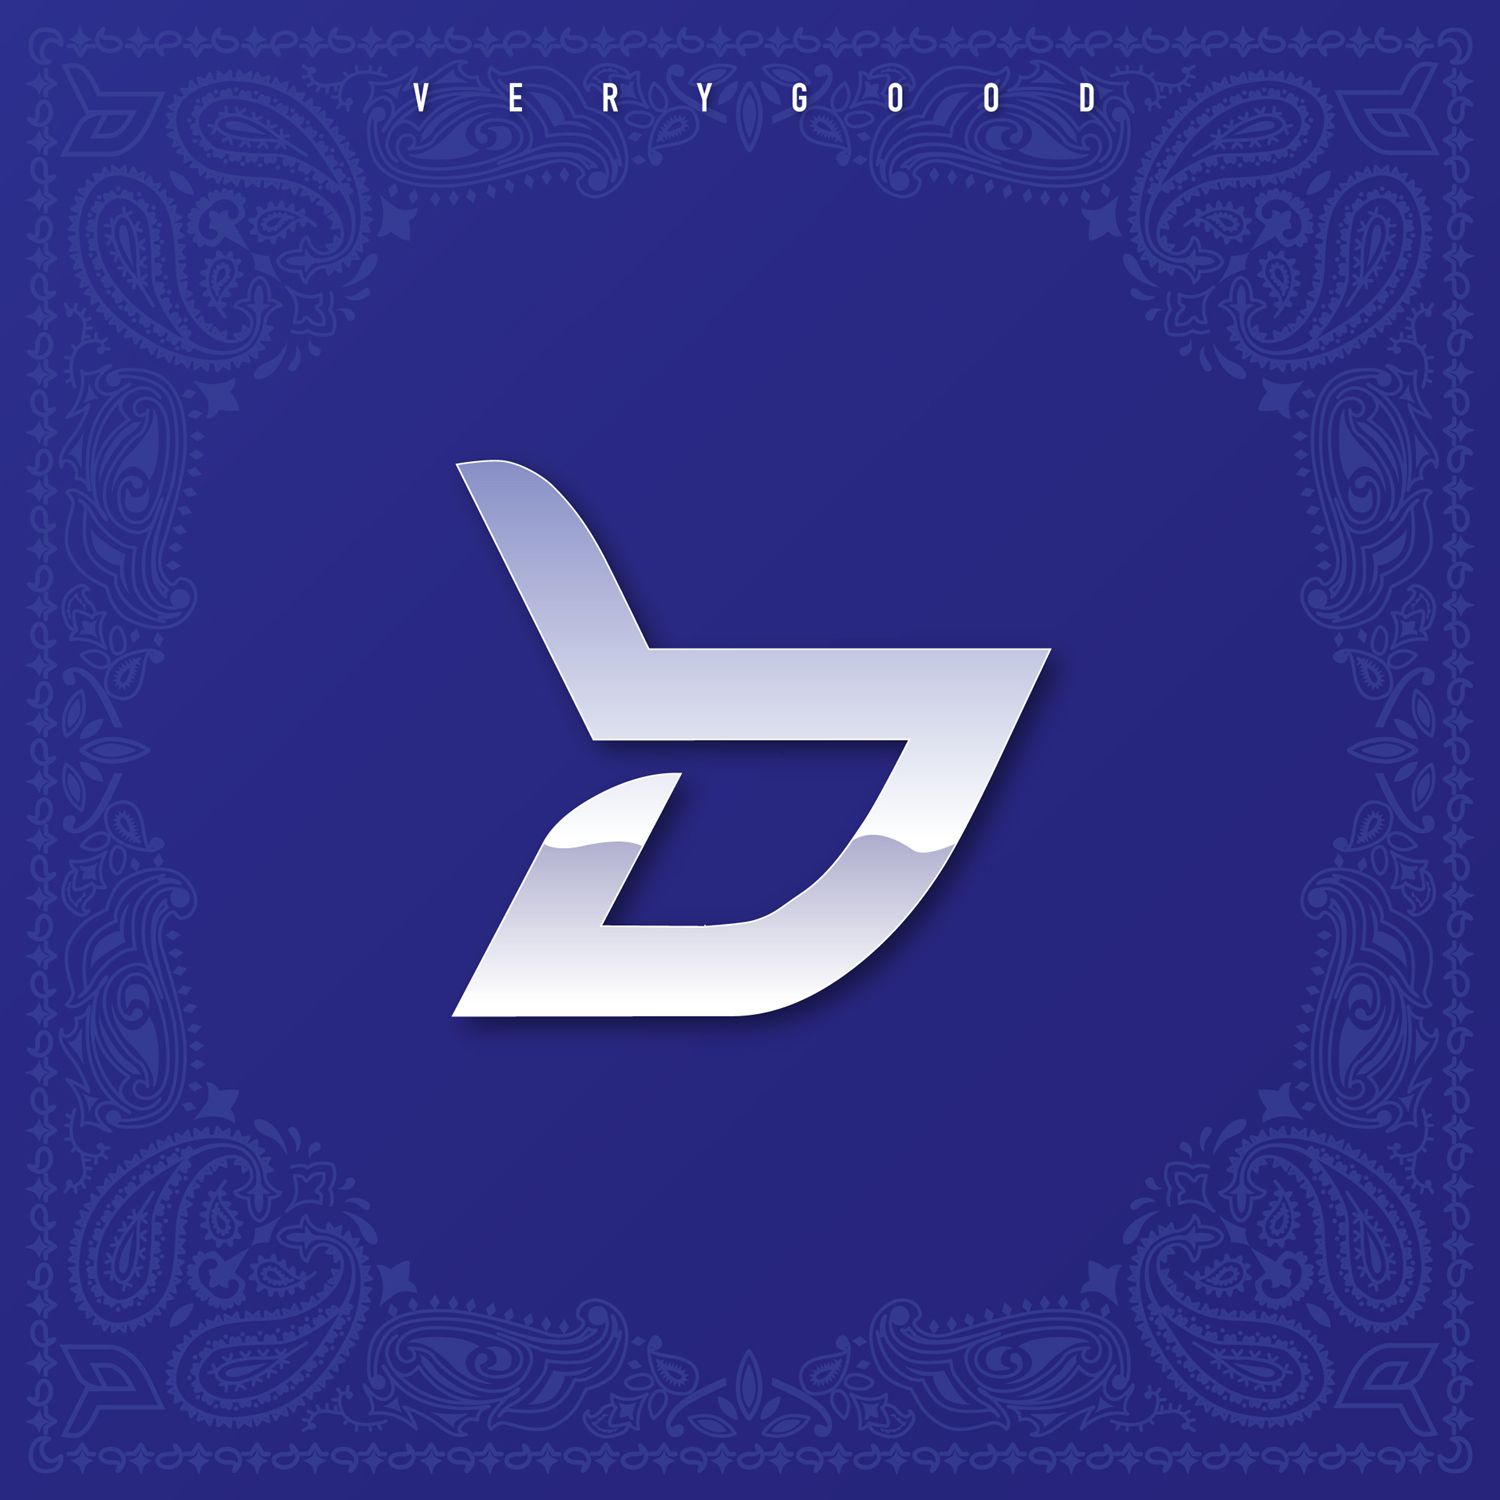 [Mini Album] Block B - Very Good [3rd Mini Album]